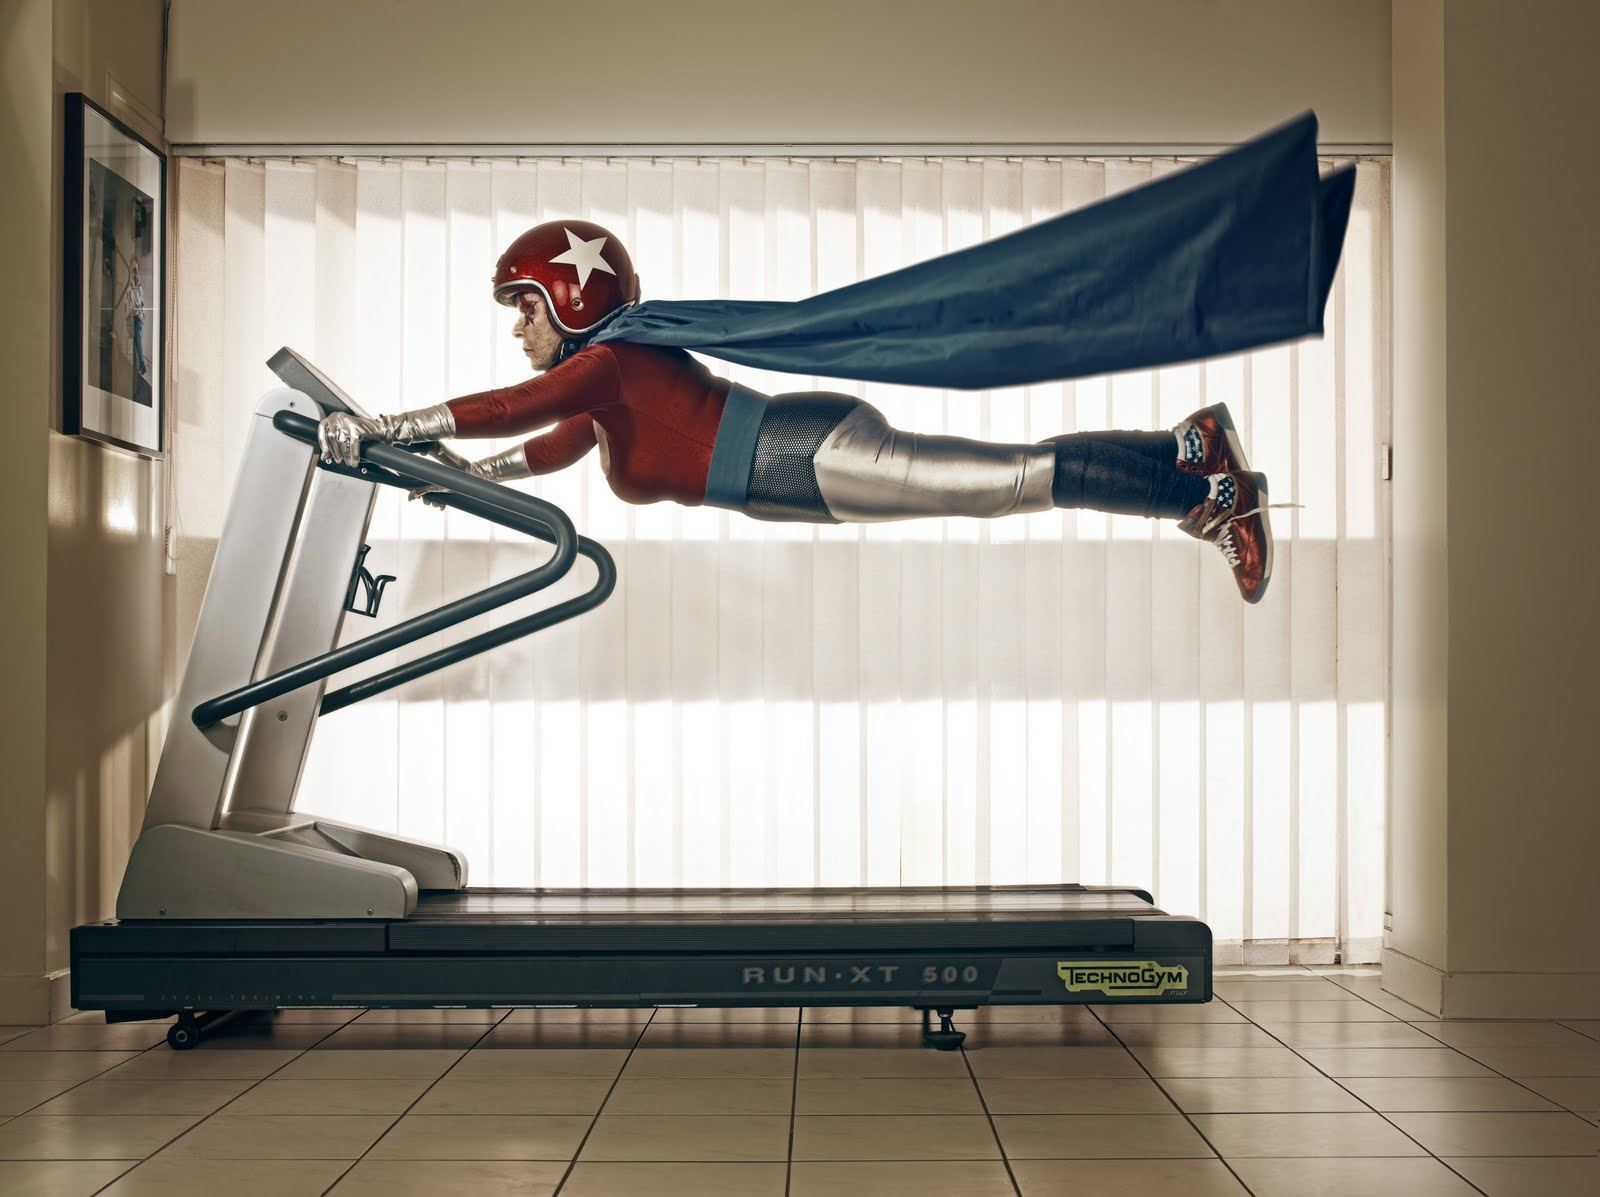 a-funny-photo-by-sacha-goldberger-of-his-grandmother-in-a-superhero-outfit-flying-on-a-treadmill.jpg